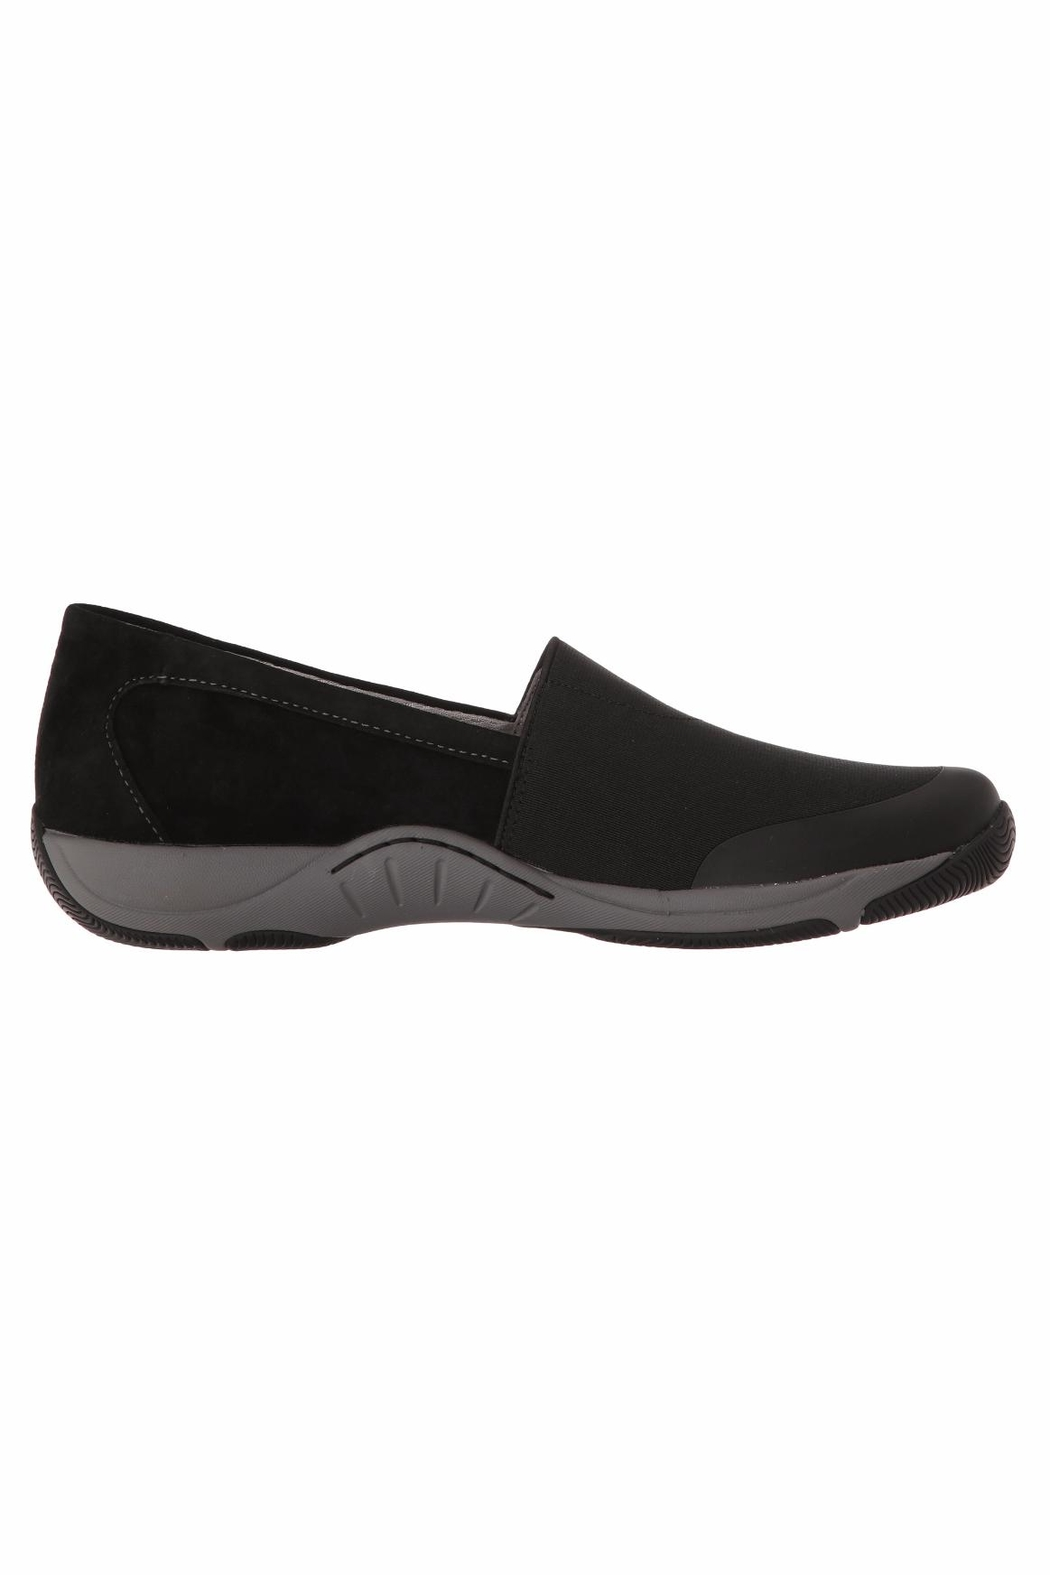 Dansko Harriette Slip On Sneaker - Side Cropped Image